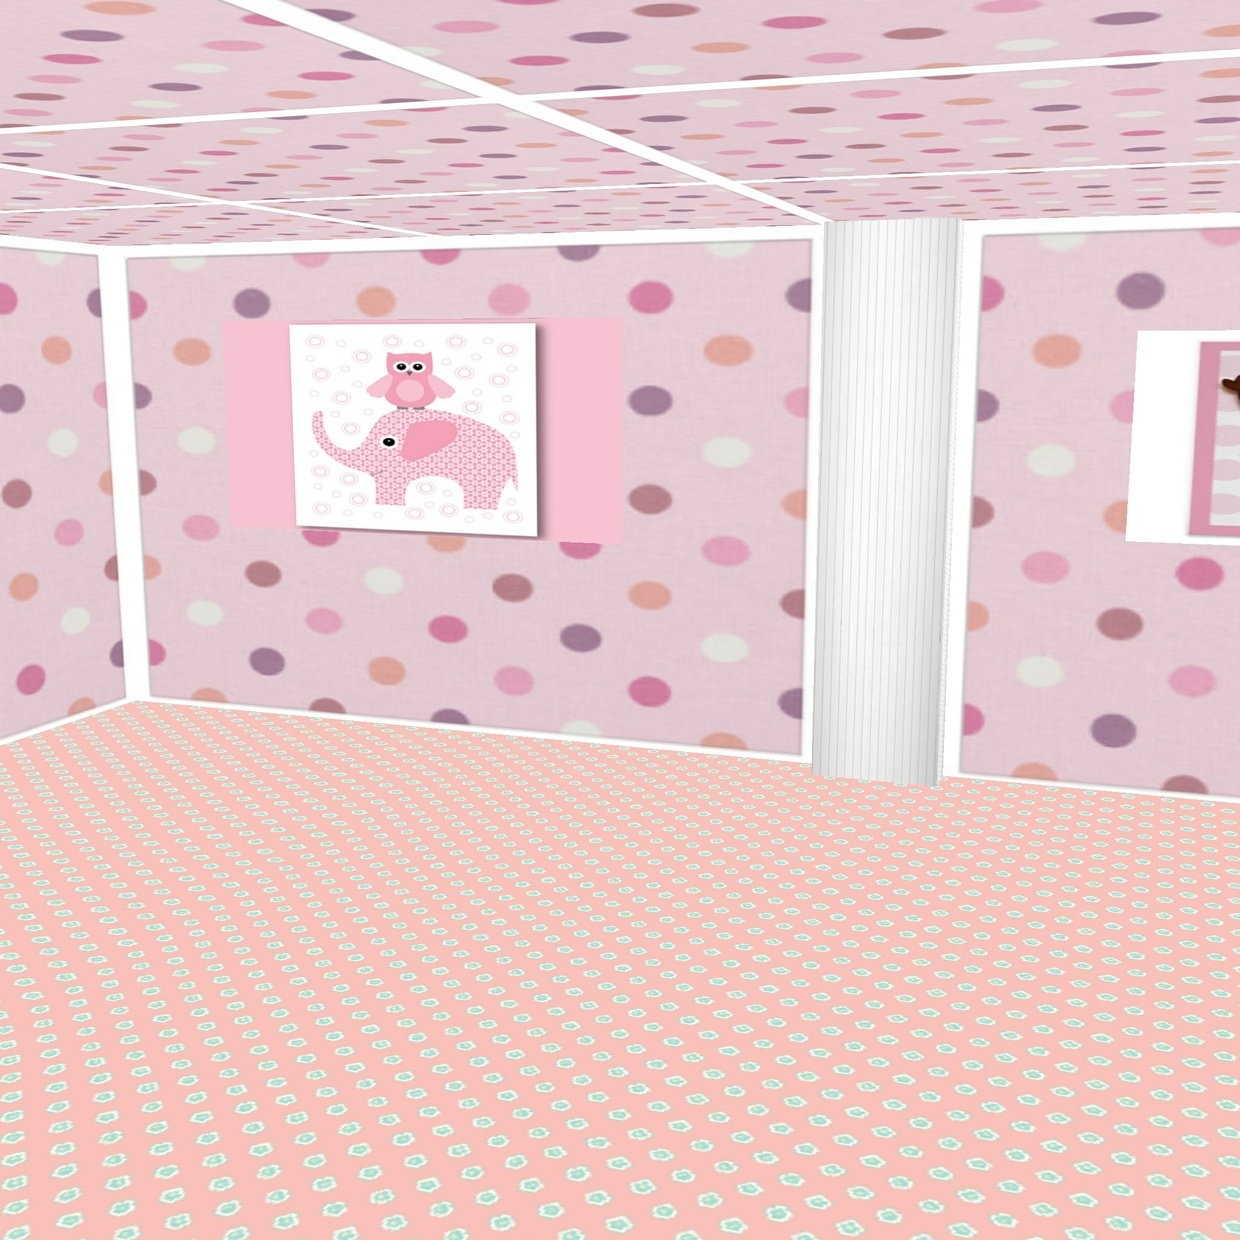 Princess Room Mesh + Free Textures Offer